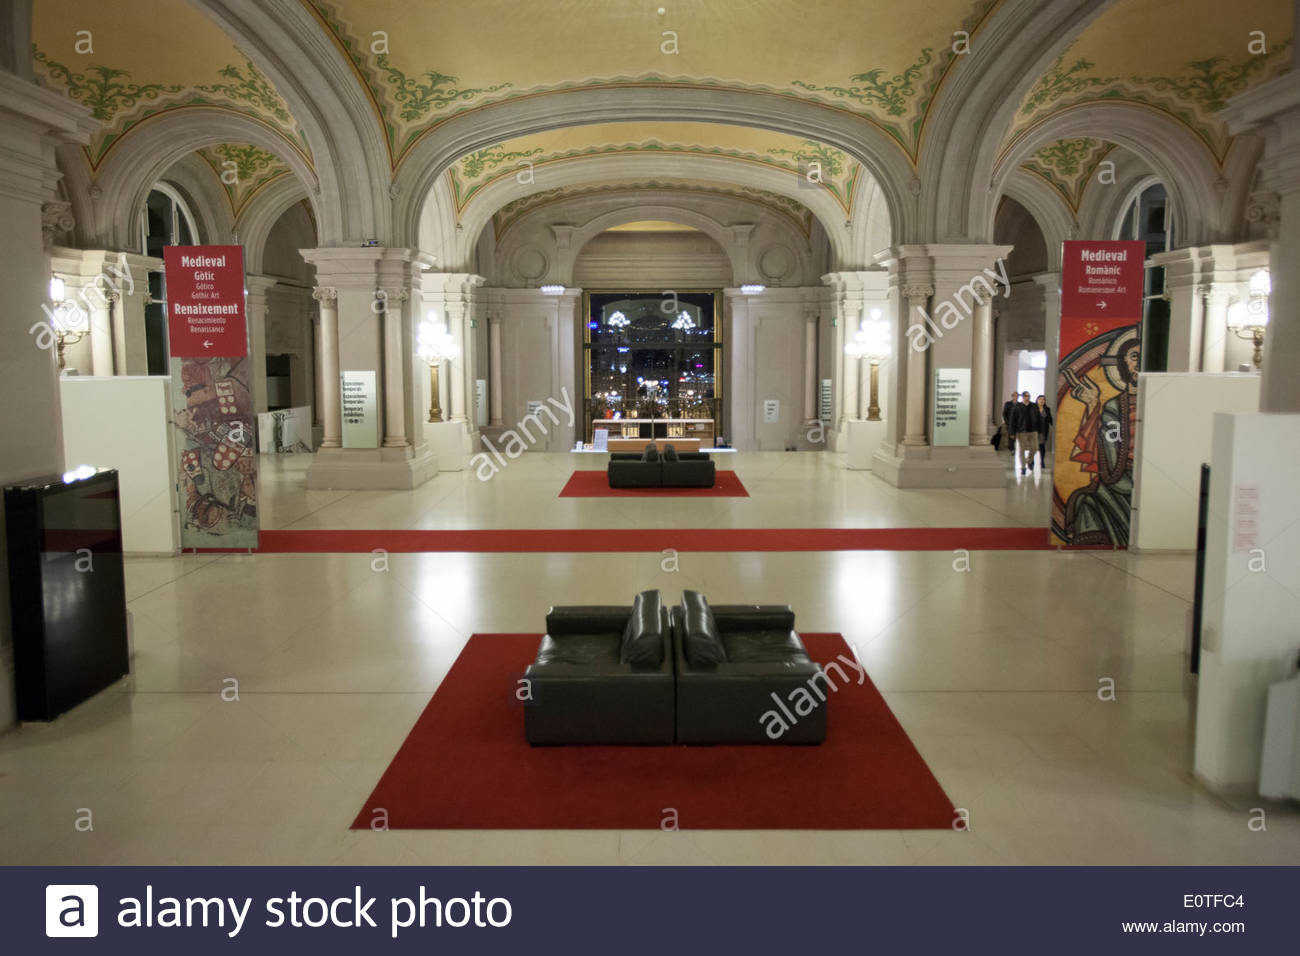 Hall of the National art museum of Catalonia  (MNAC) Barcelona. Spain - Stock Image